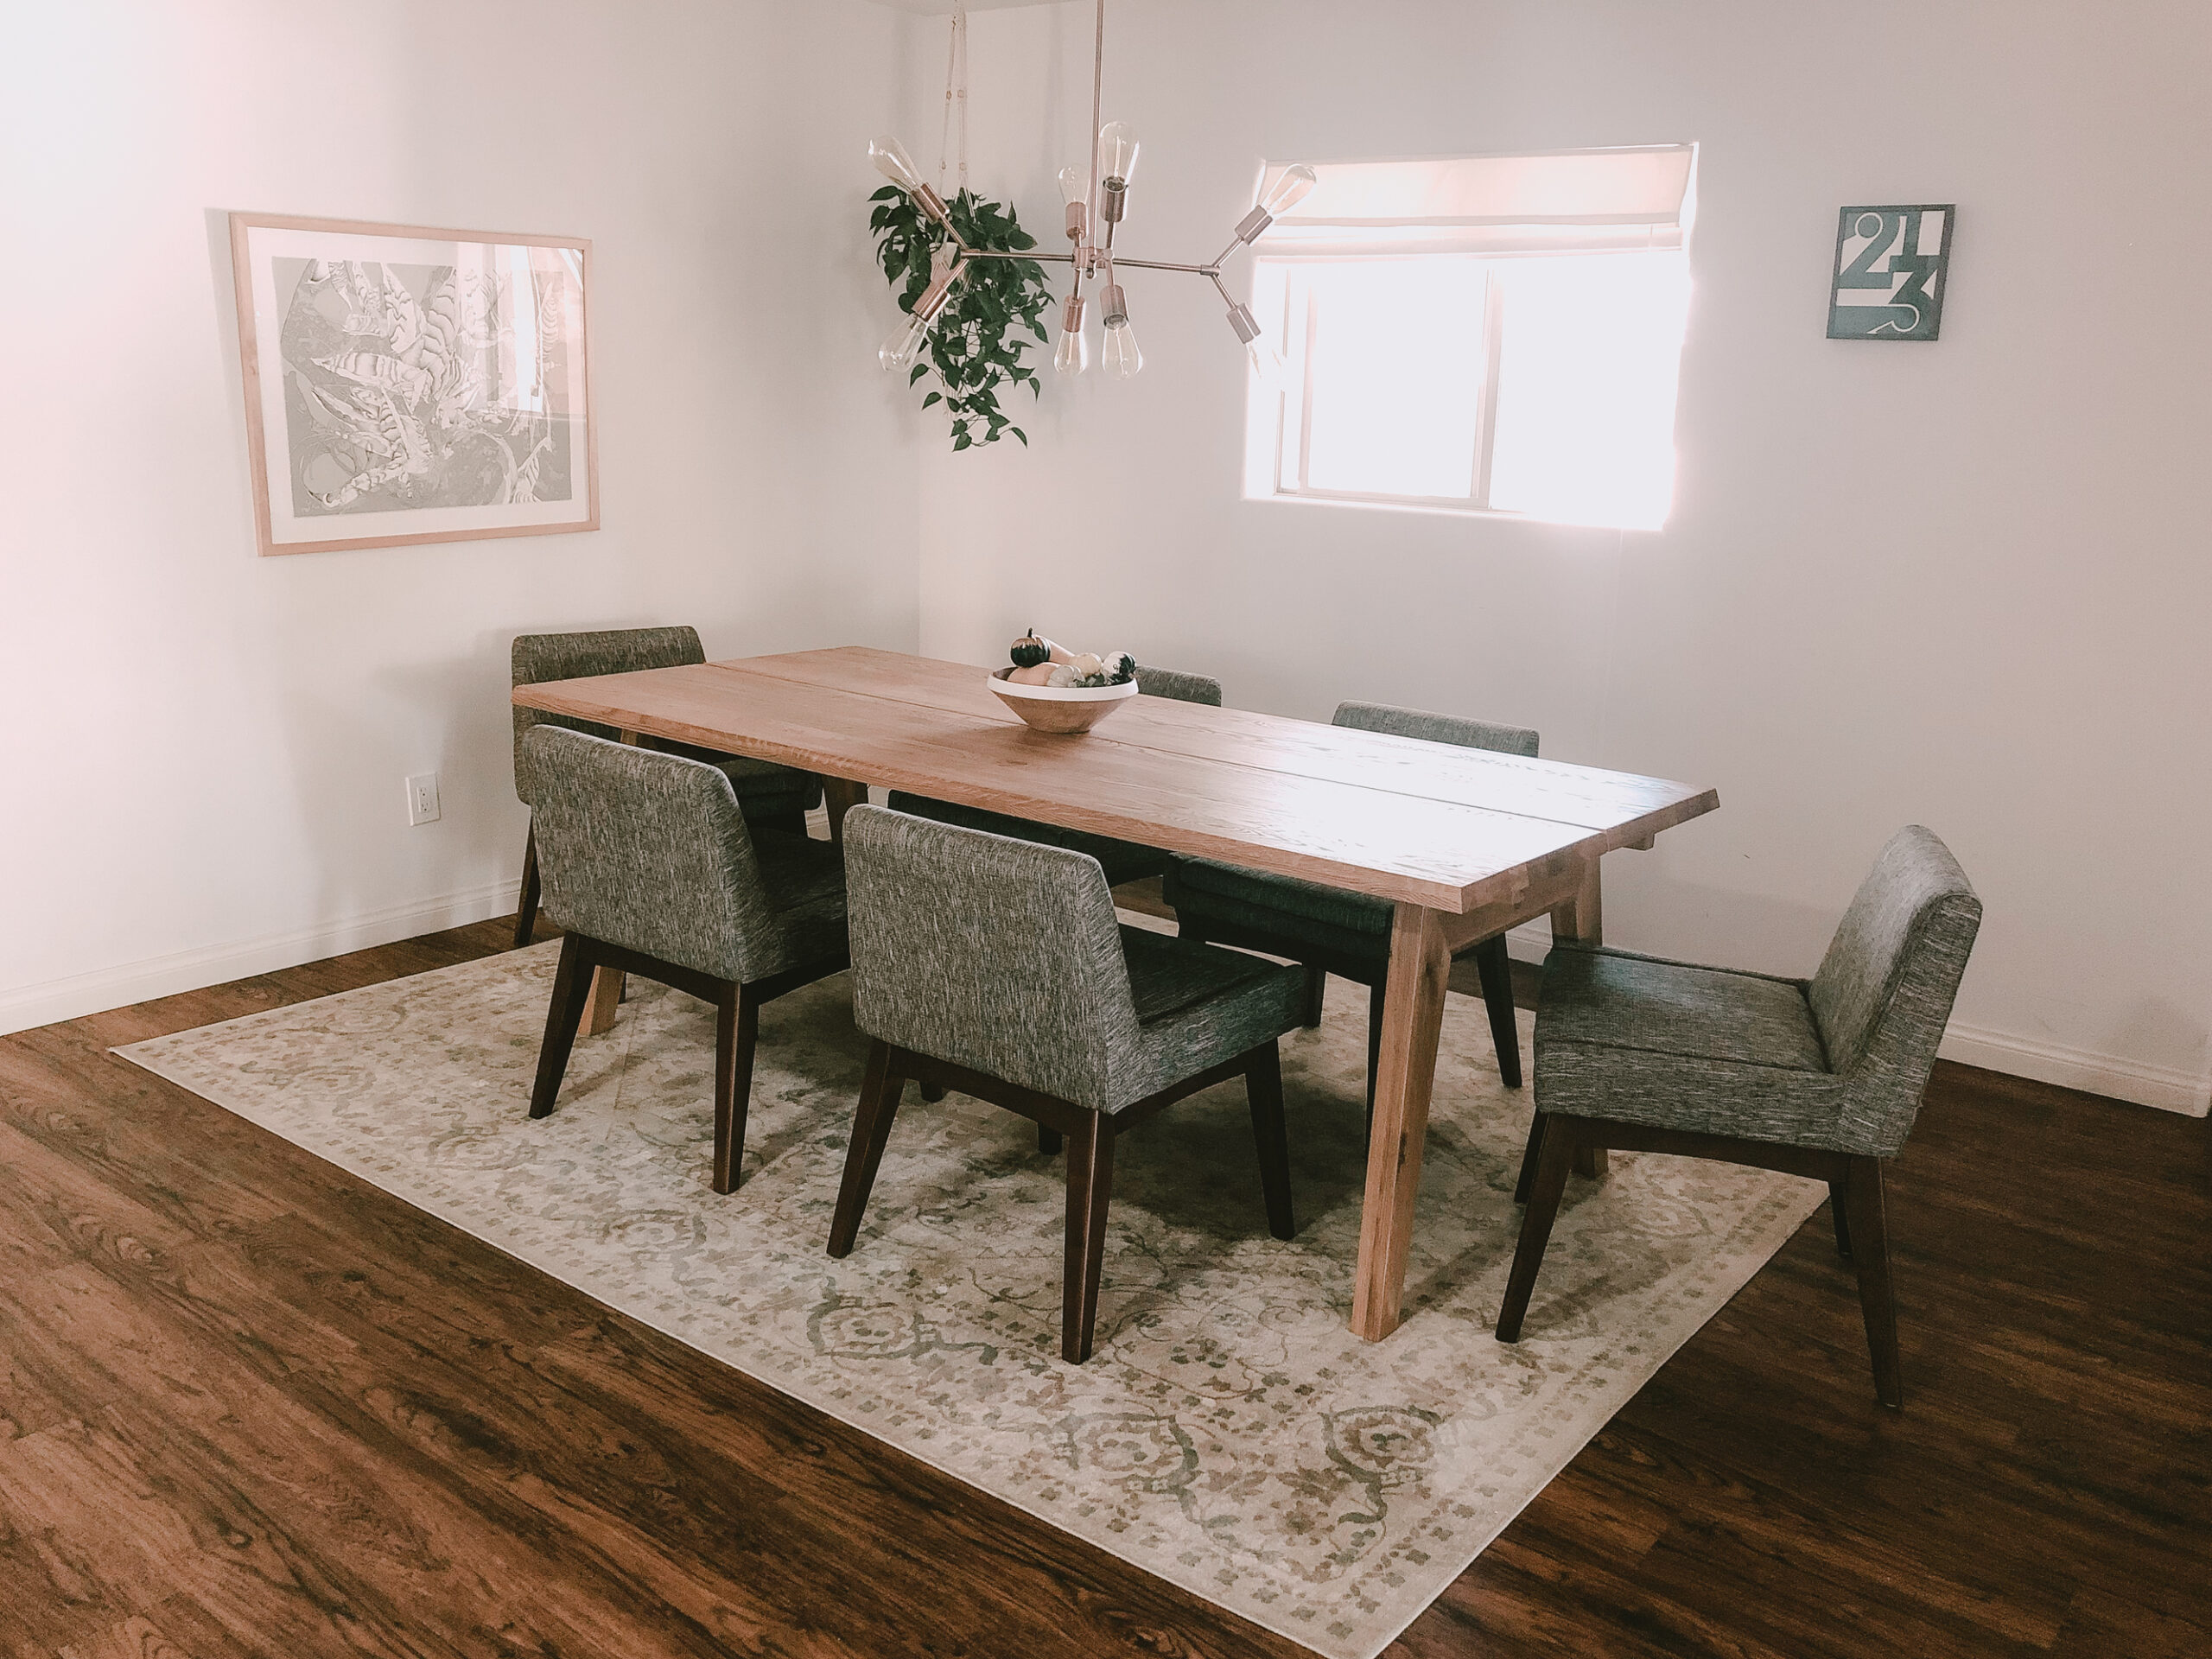 the chairs that didn't work quite right in our dining room and got sent back. #midcenturymodern #diningroomreveal #beforeandafter